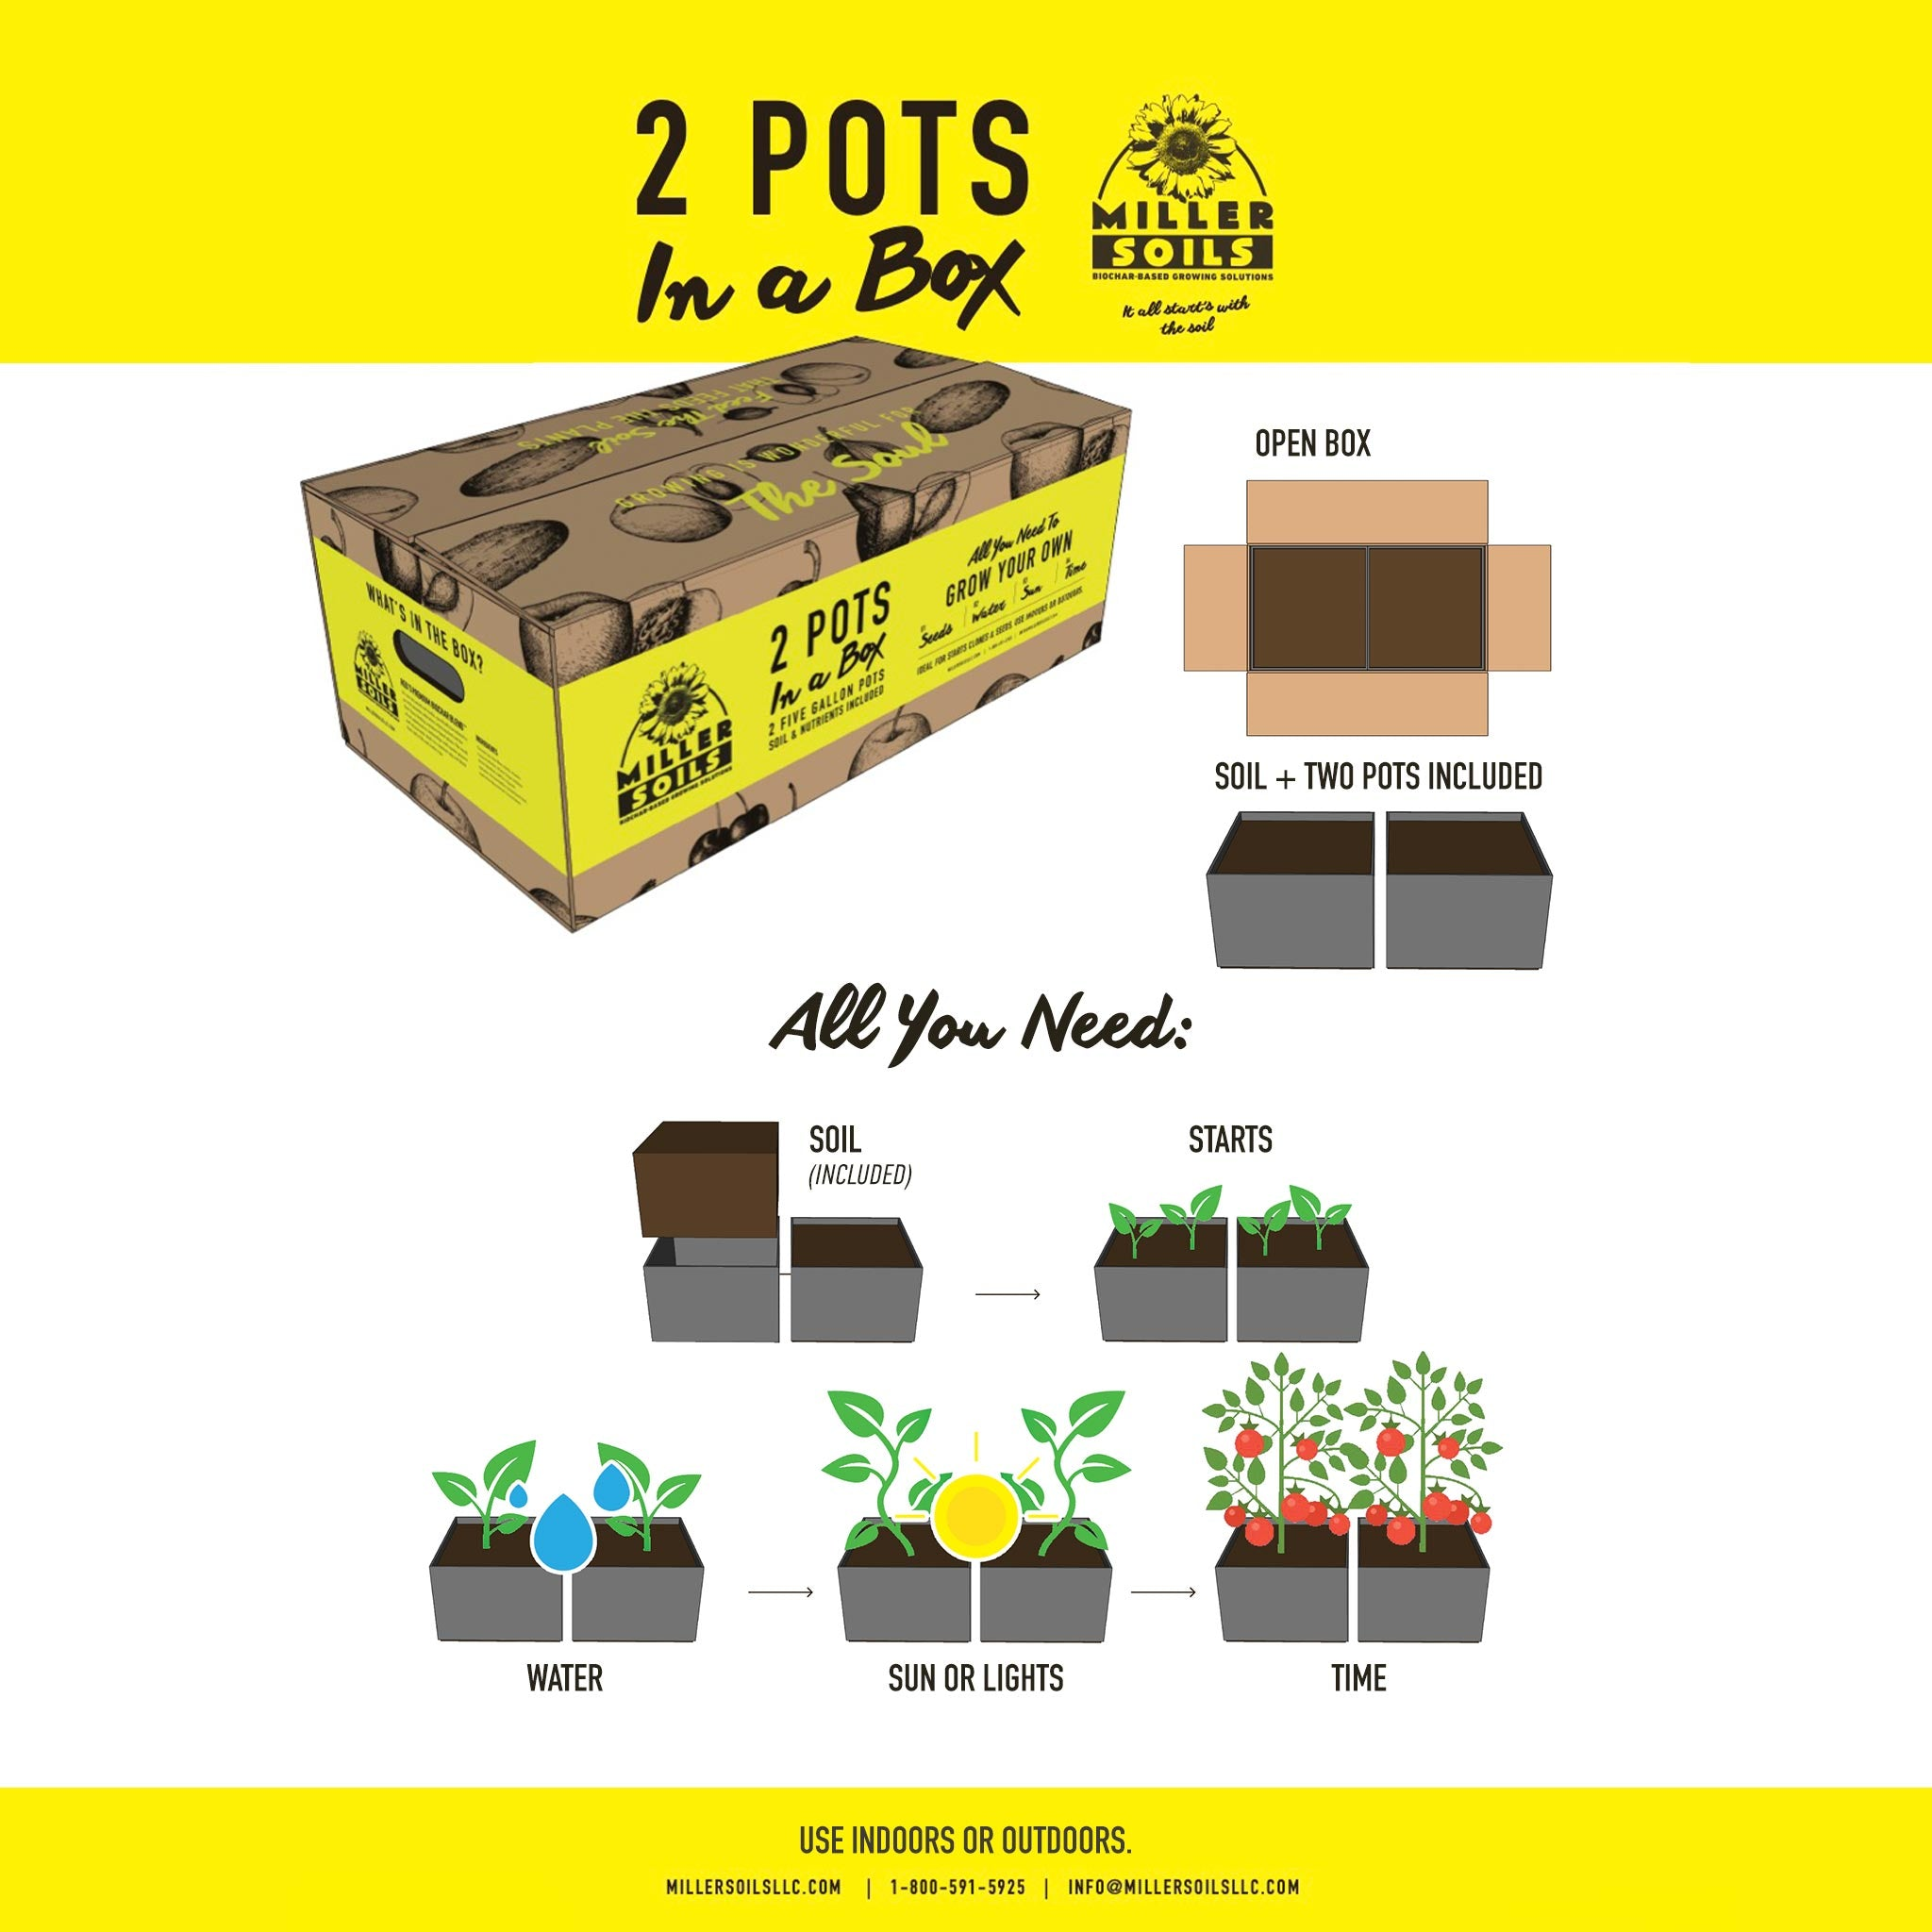 2 Pots in a Box